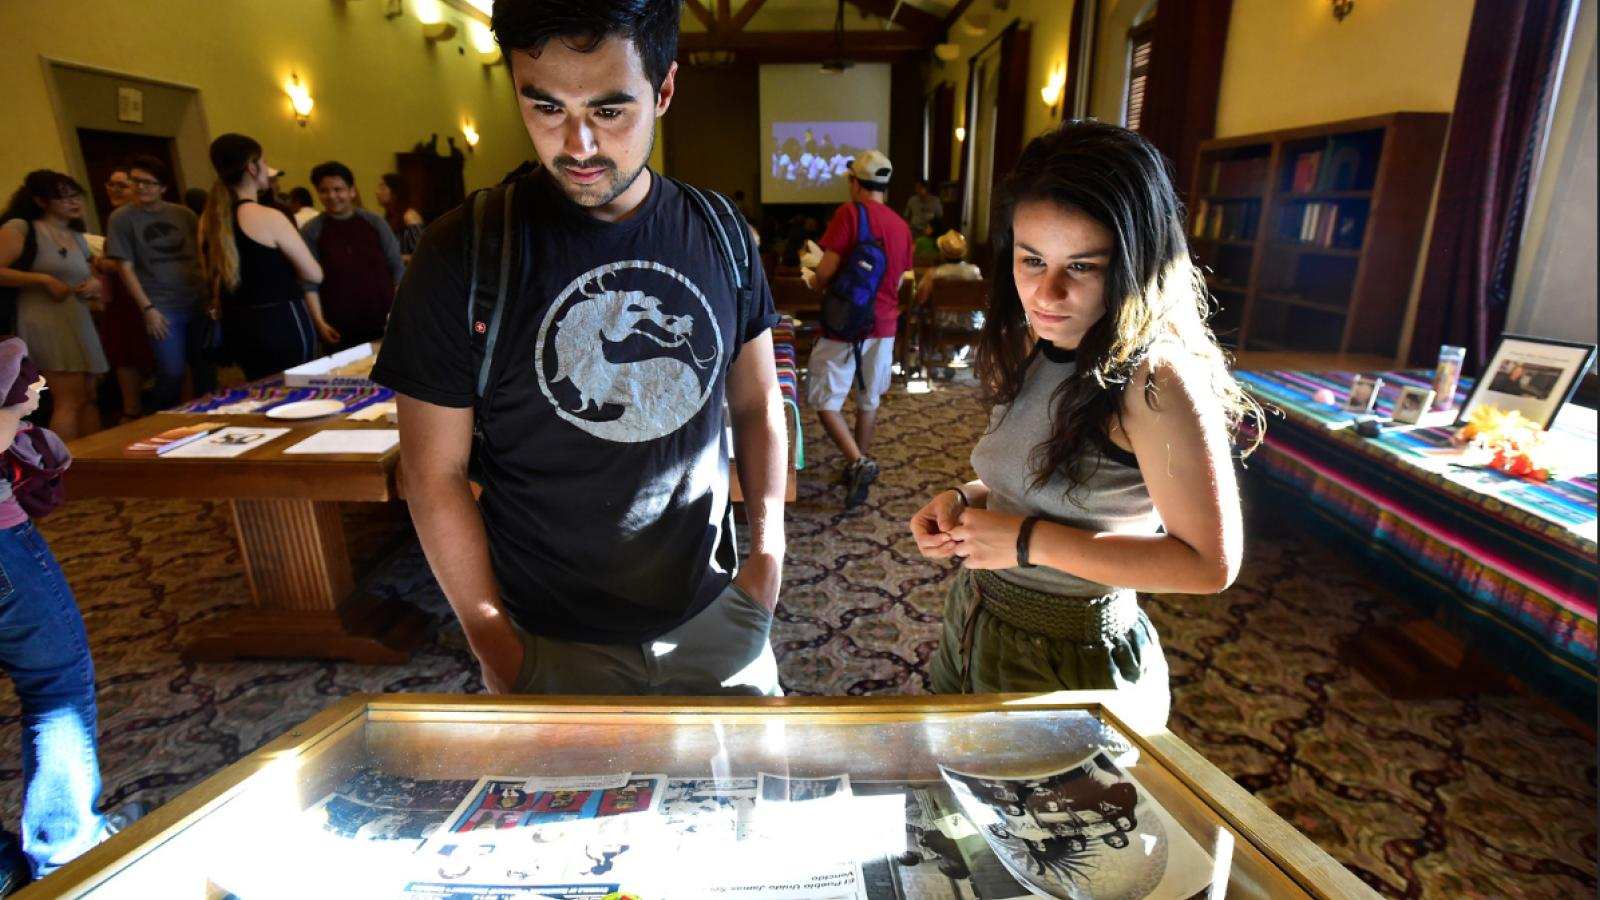 Students looking at an exhibit case at the UMAS celebration.